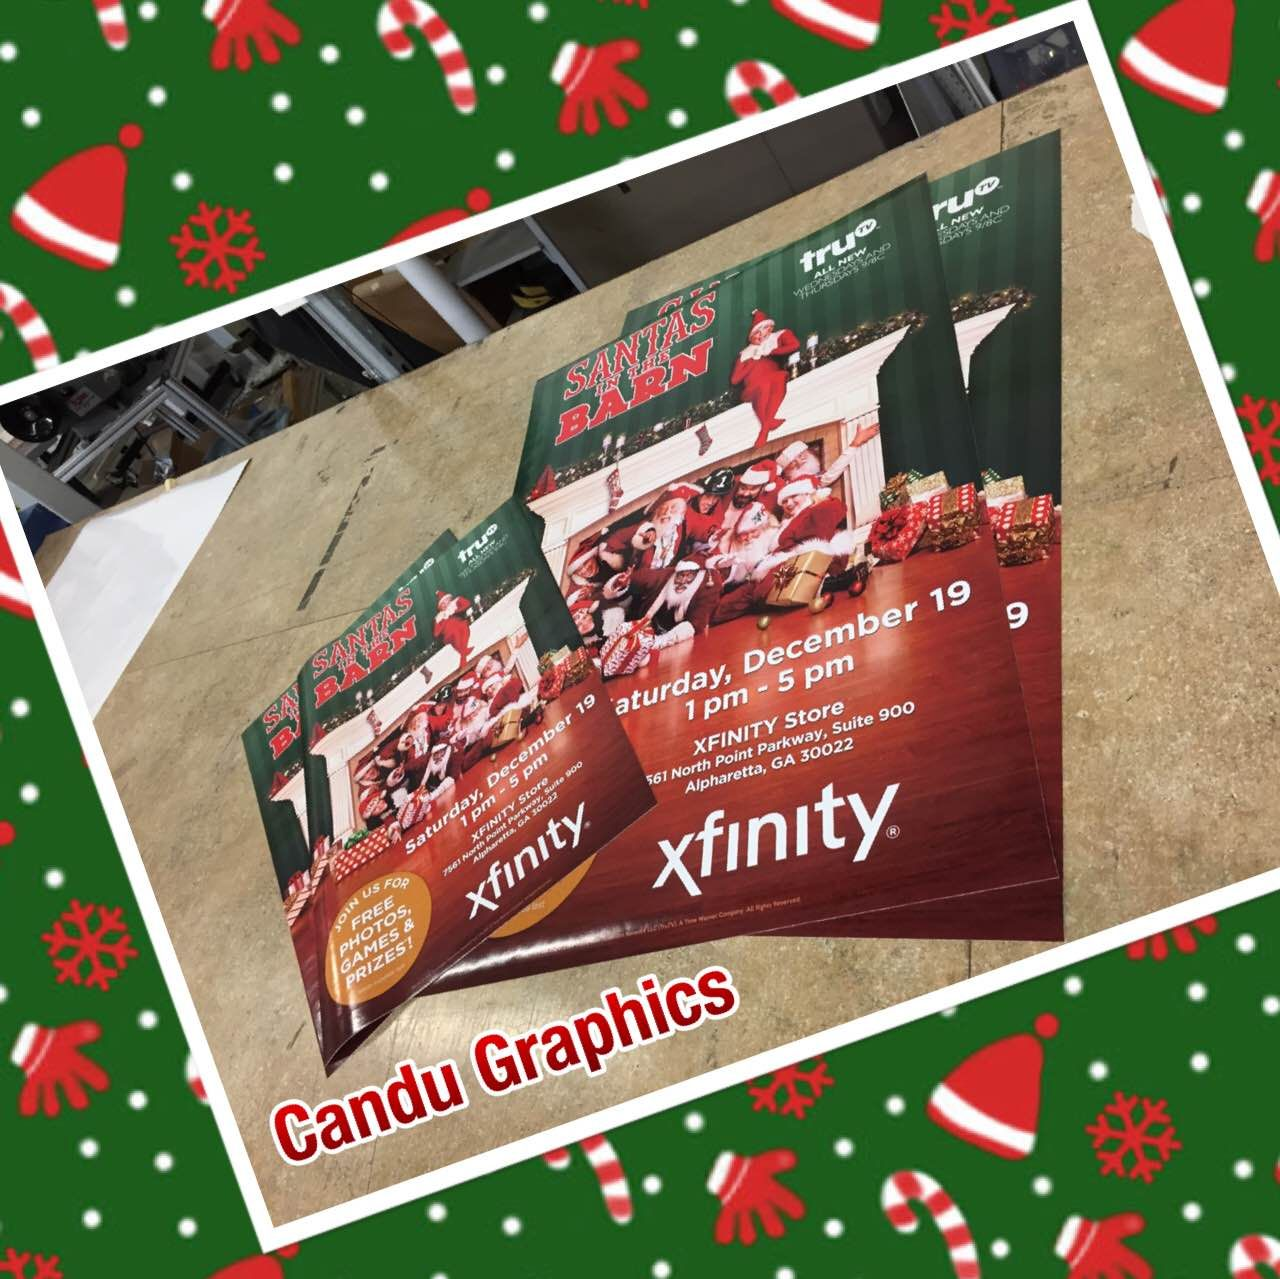 Get your business into the #holidayspirit with custom #window #cling #signs #decal #busines #holidayseason #candugraphics